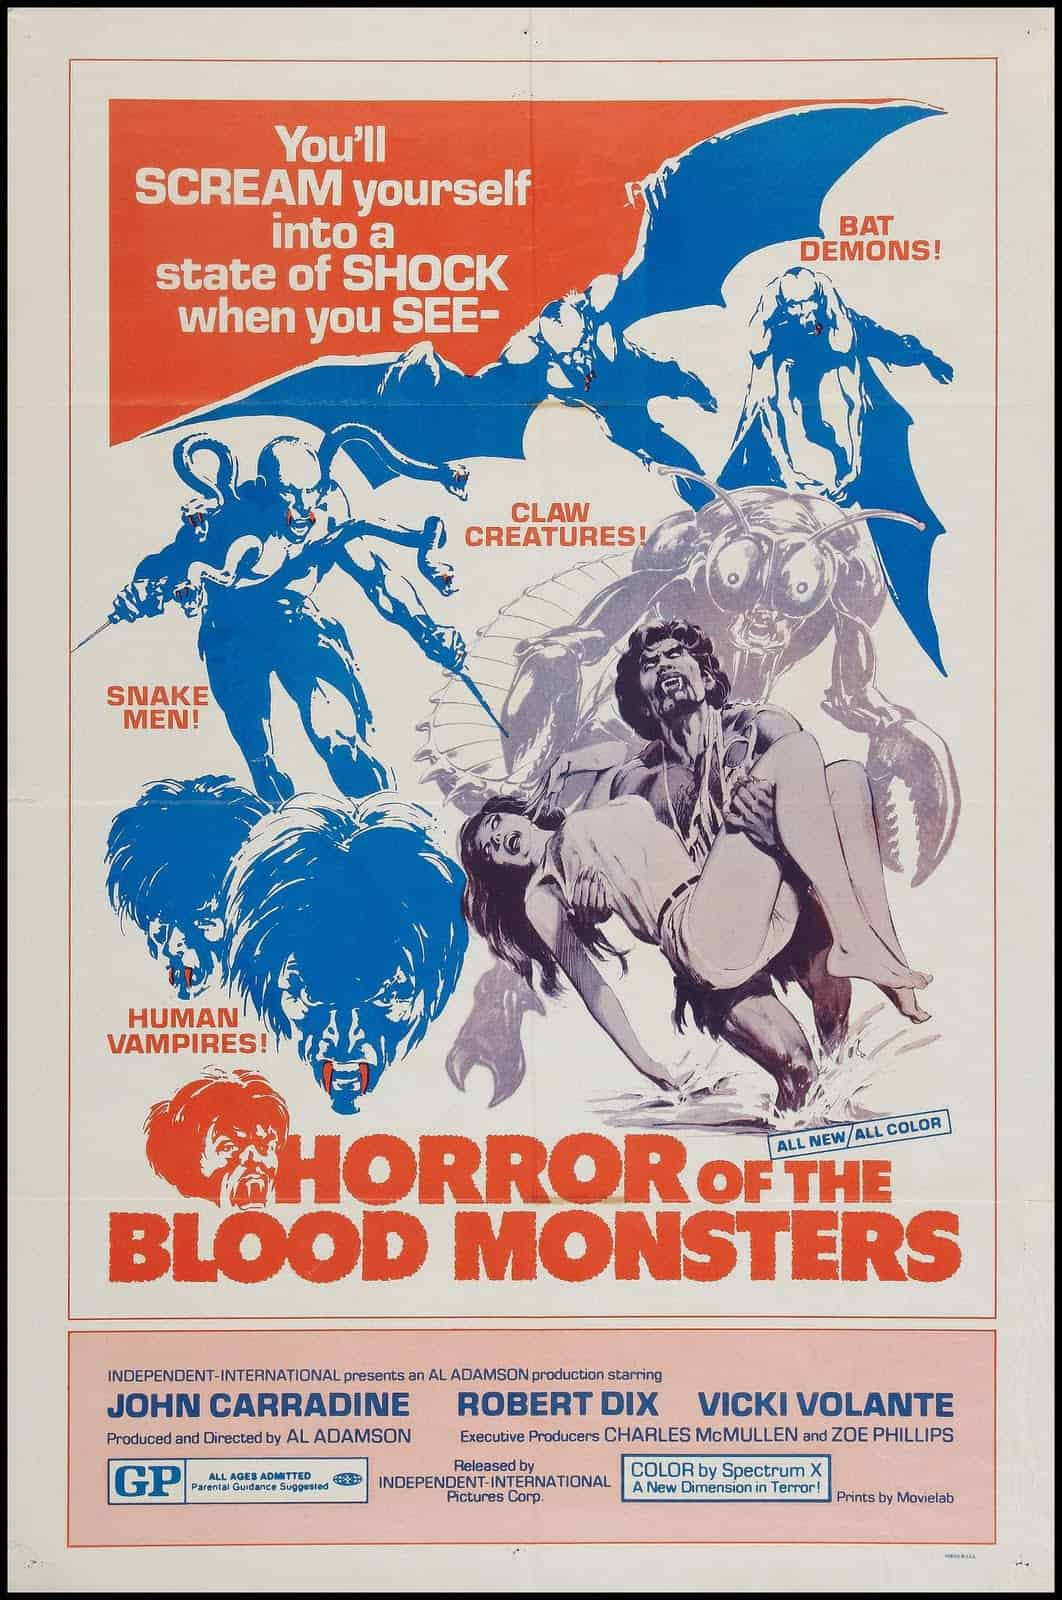 Movie Posters We Love: Horror of the Blood Monsters (1970)